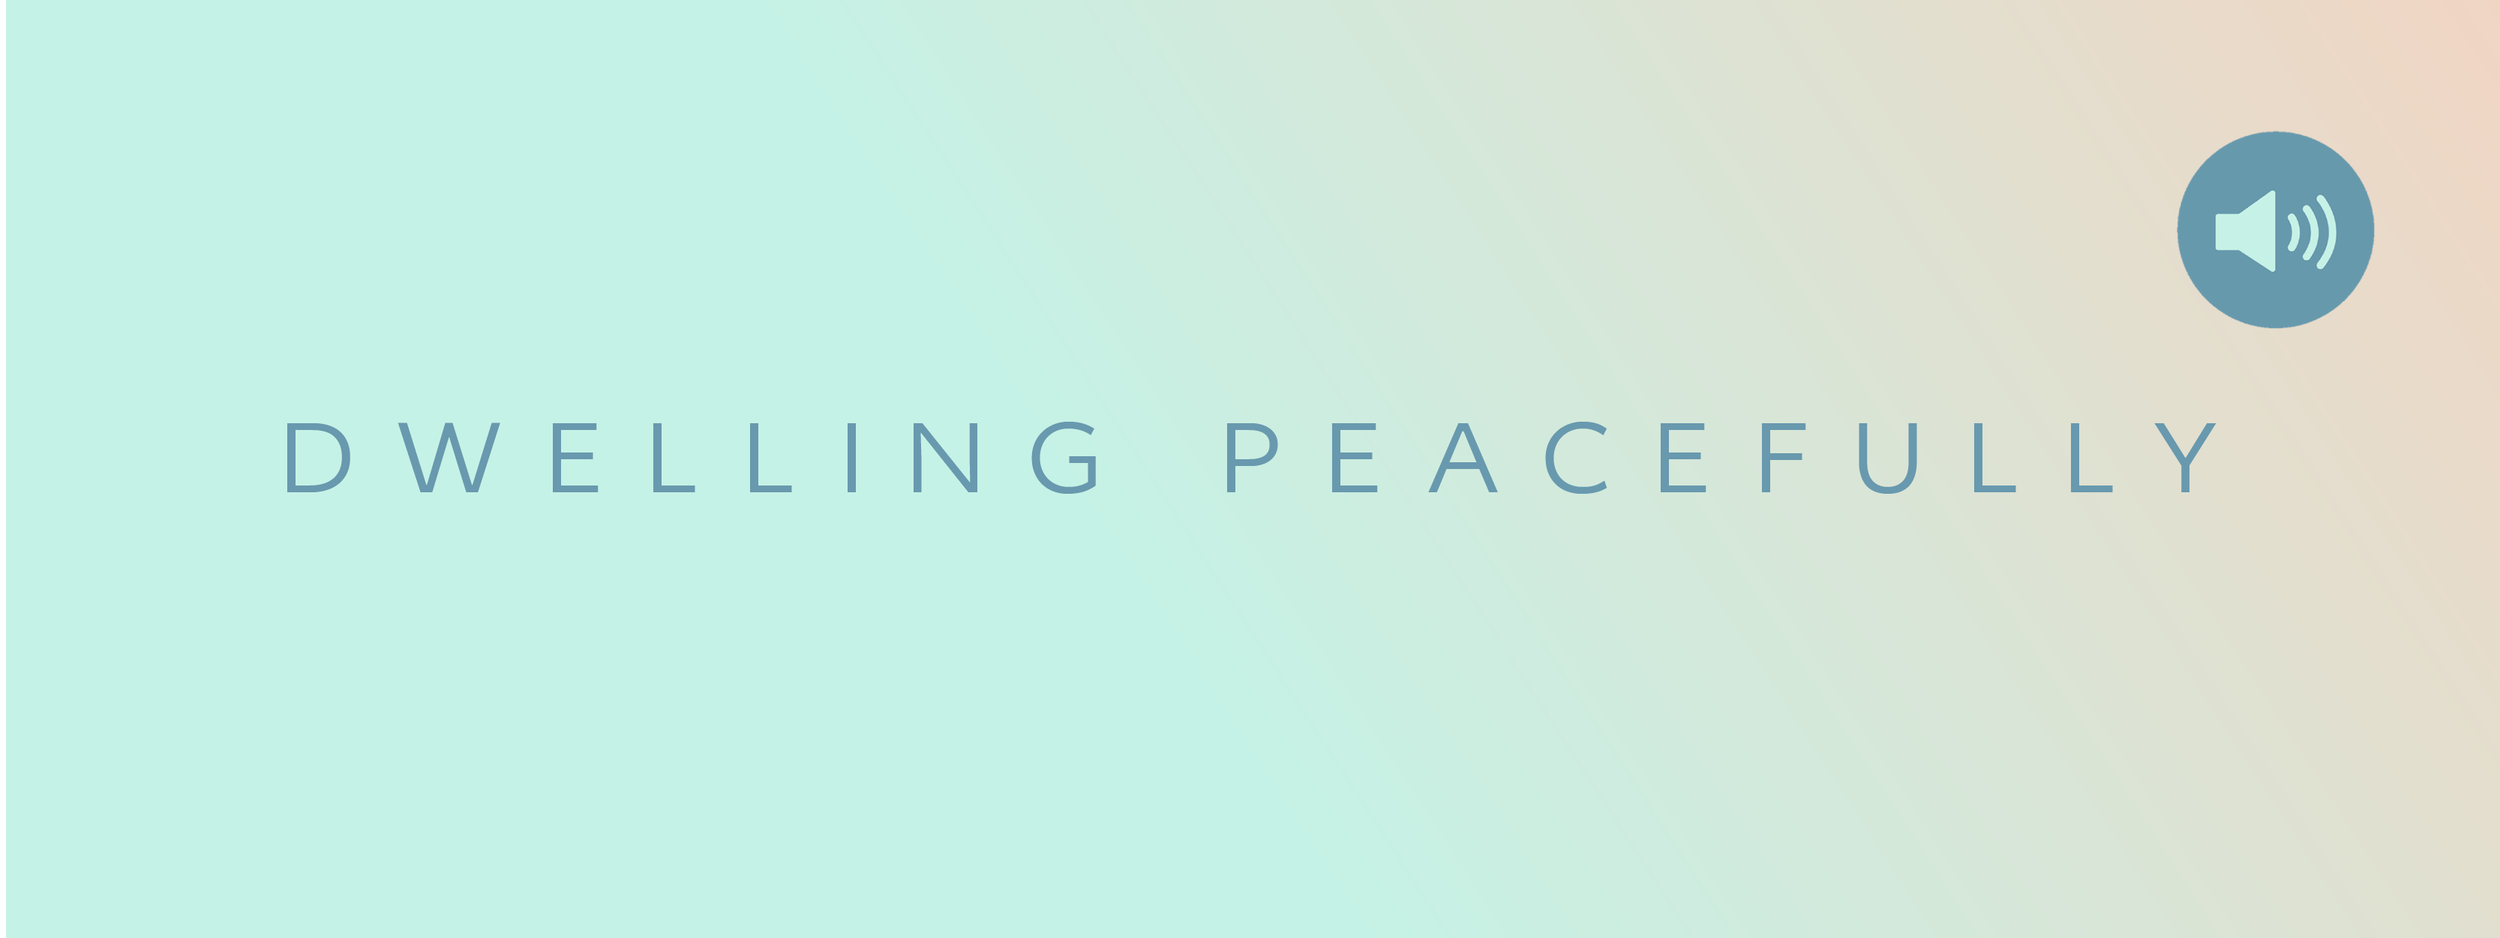 Dwelling Peacefully.png